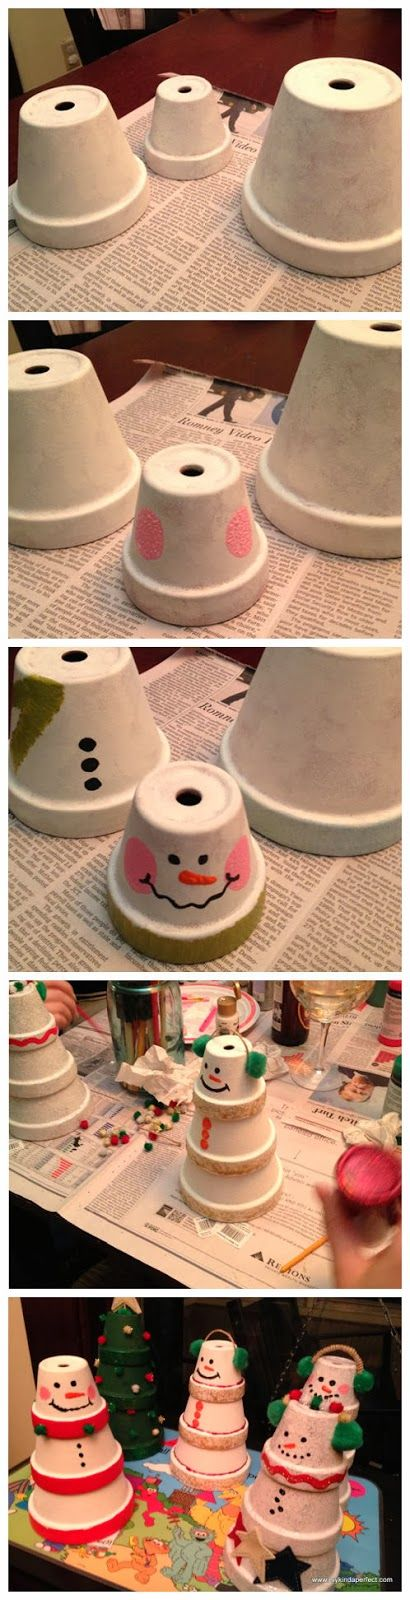 snowman craft-only do first snowman